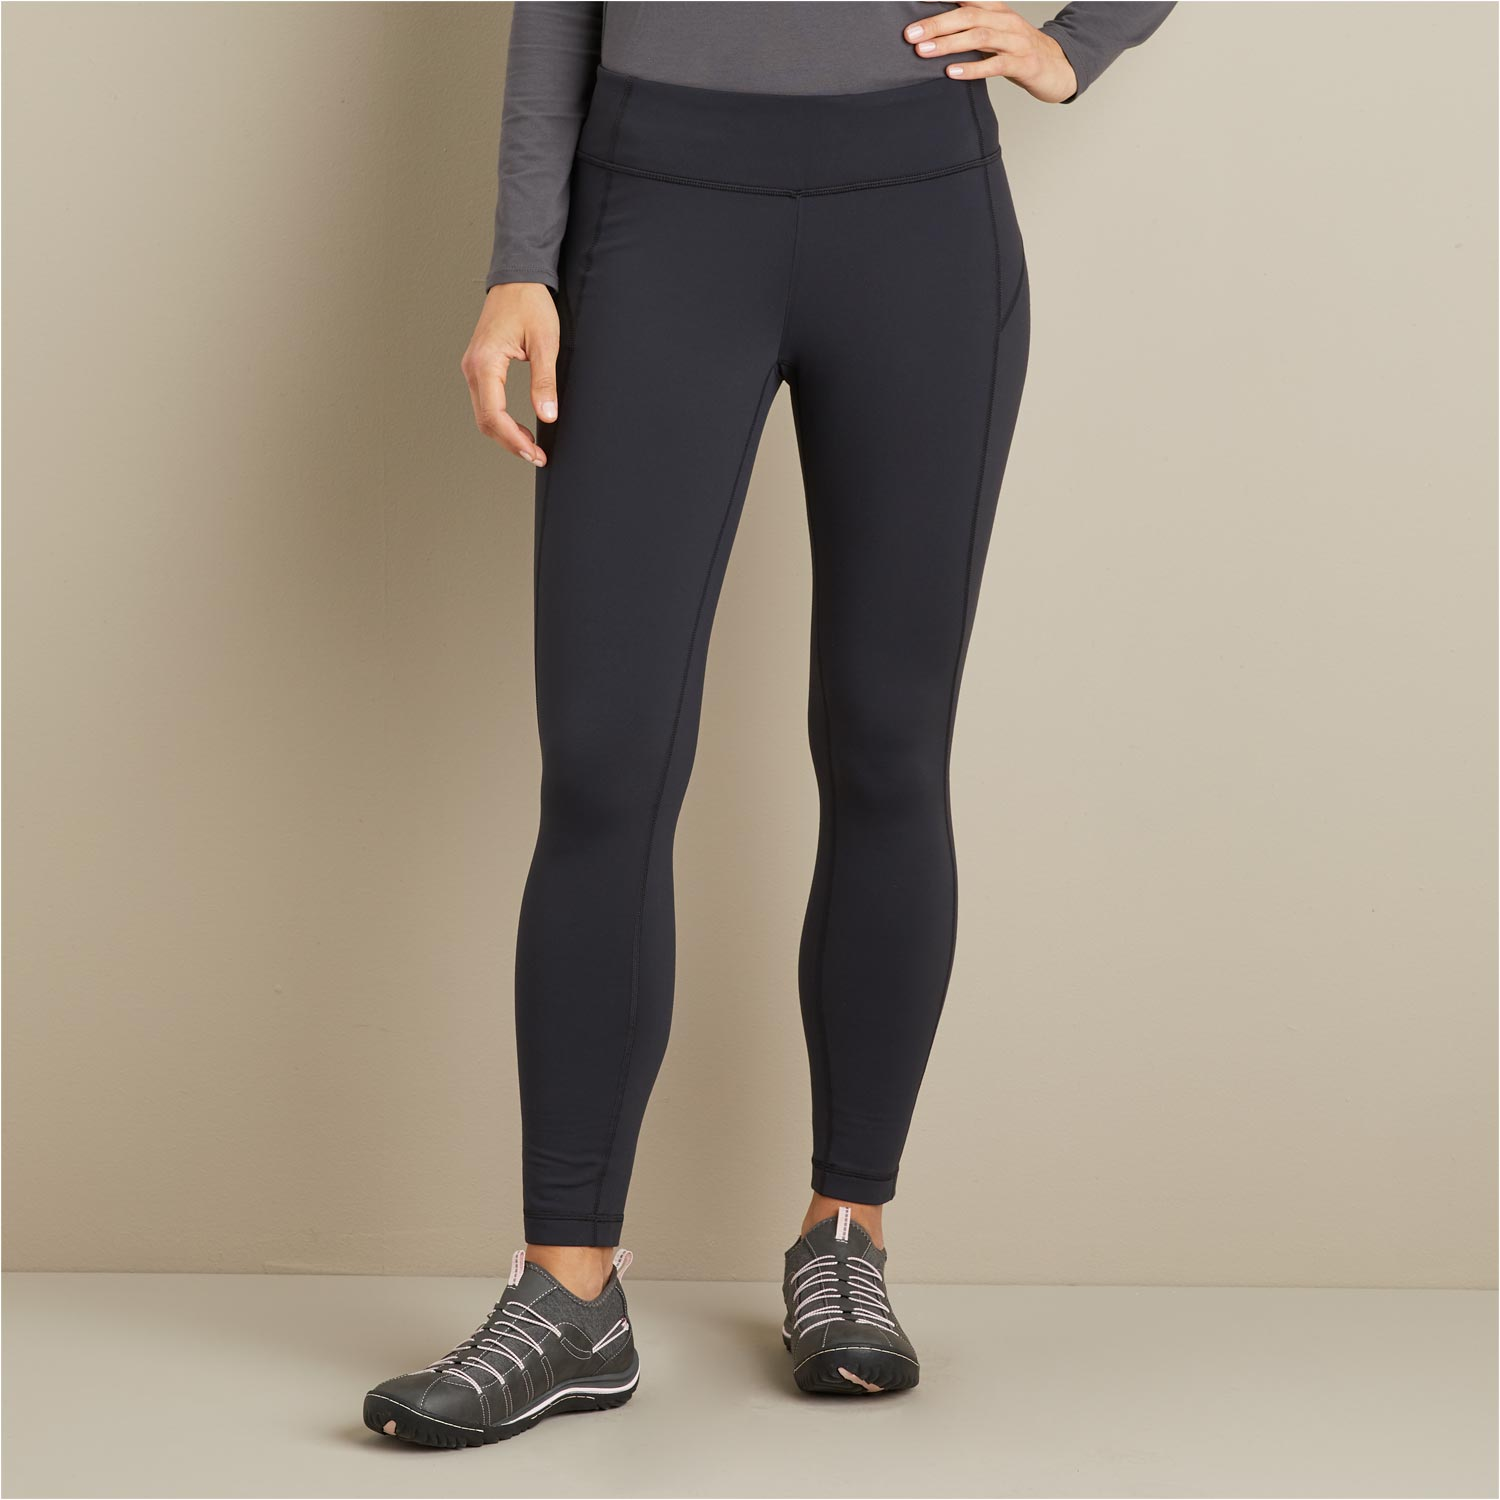 0d2cc48fbd0 Women's NoGA Stretch Relaxed Fit Pants | Duluth Trading Company